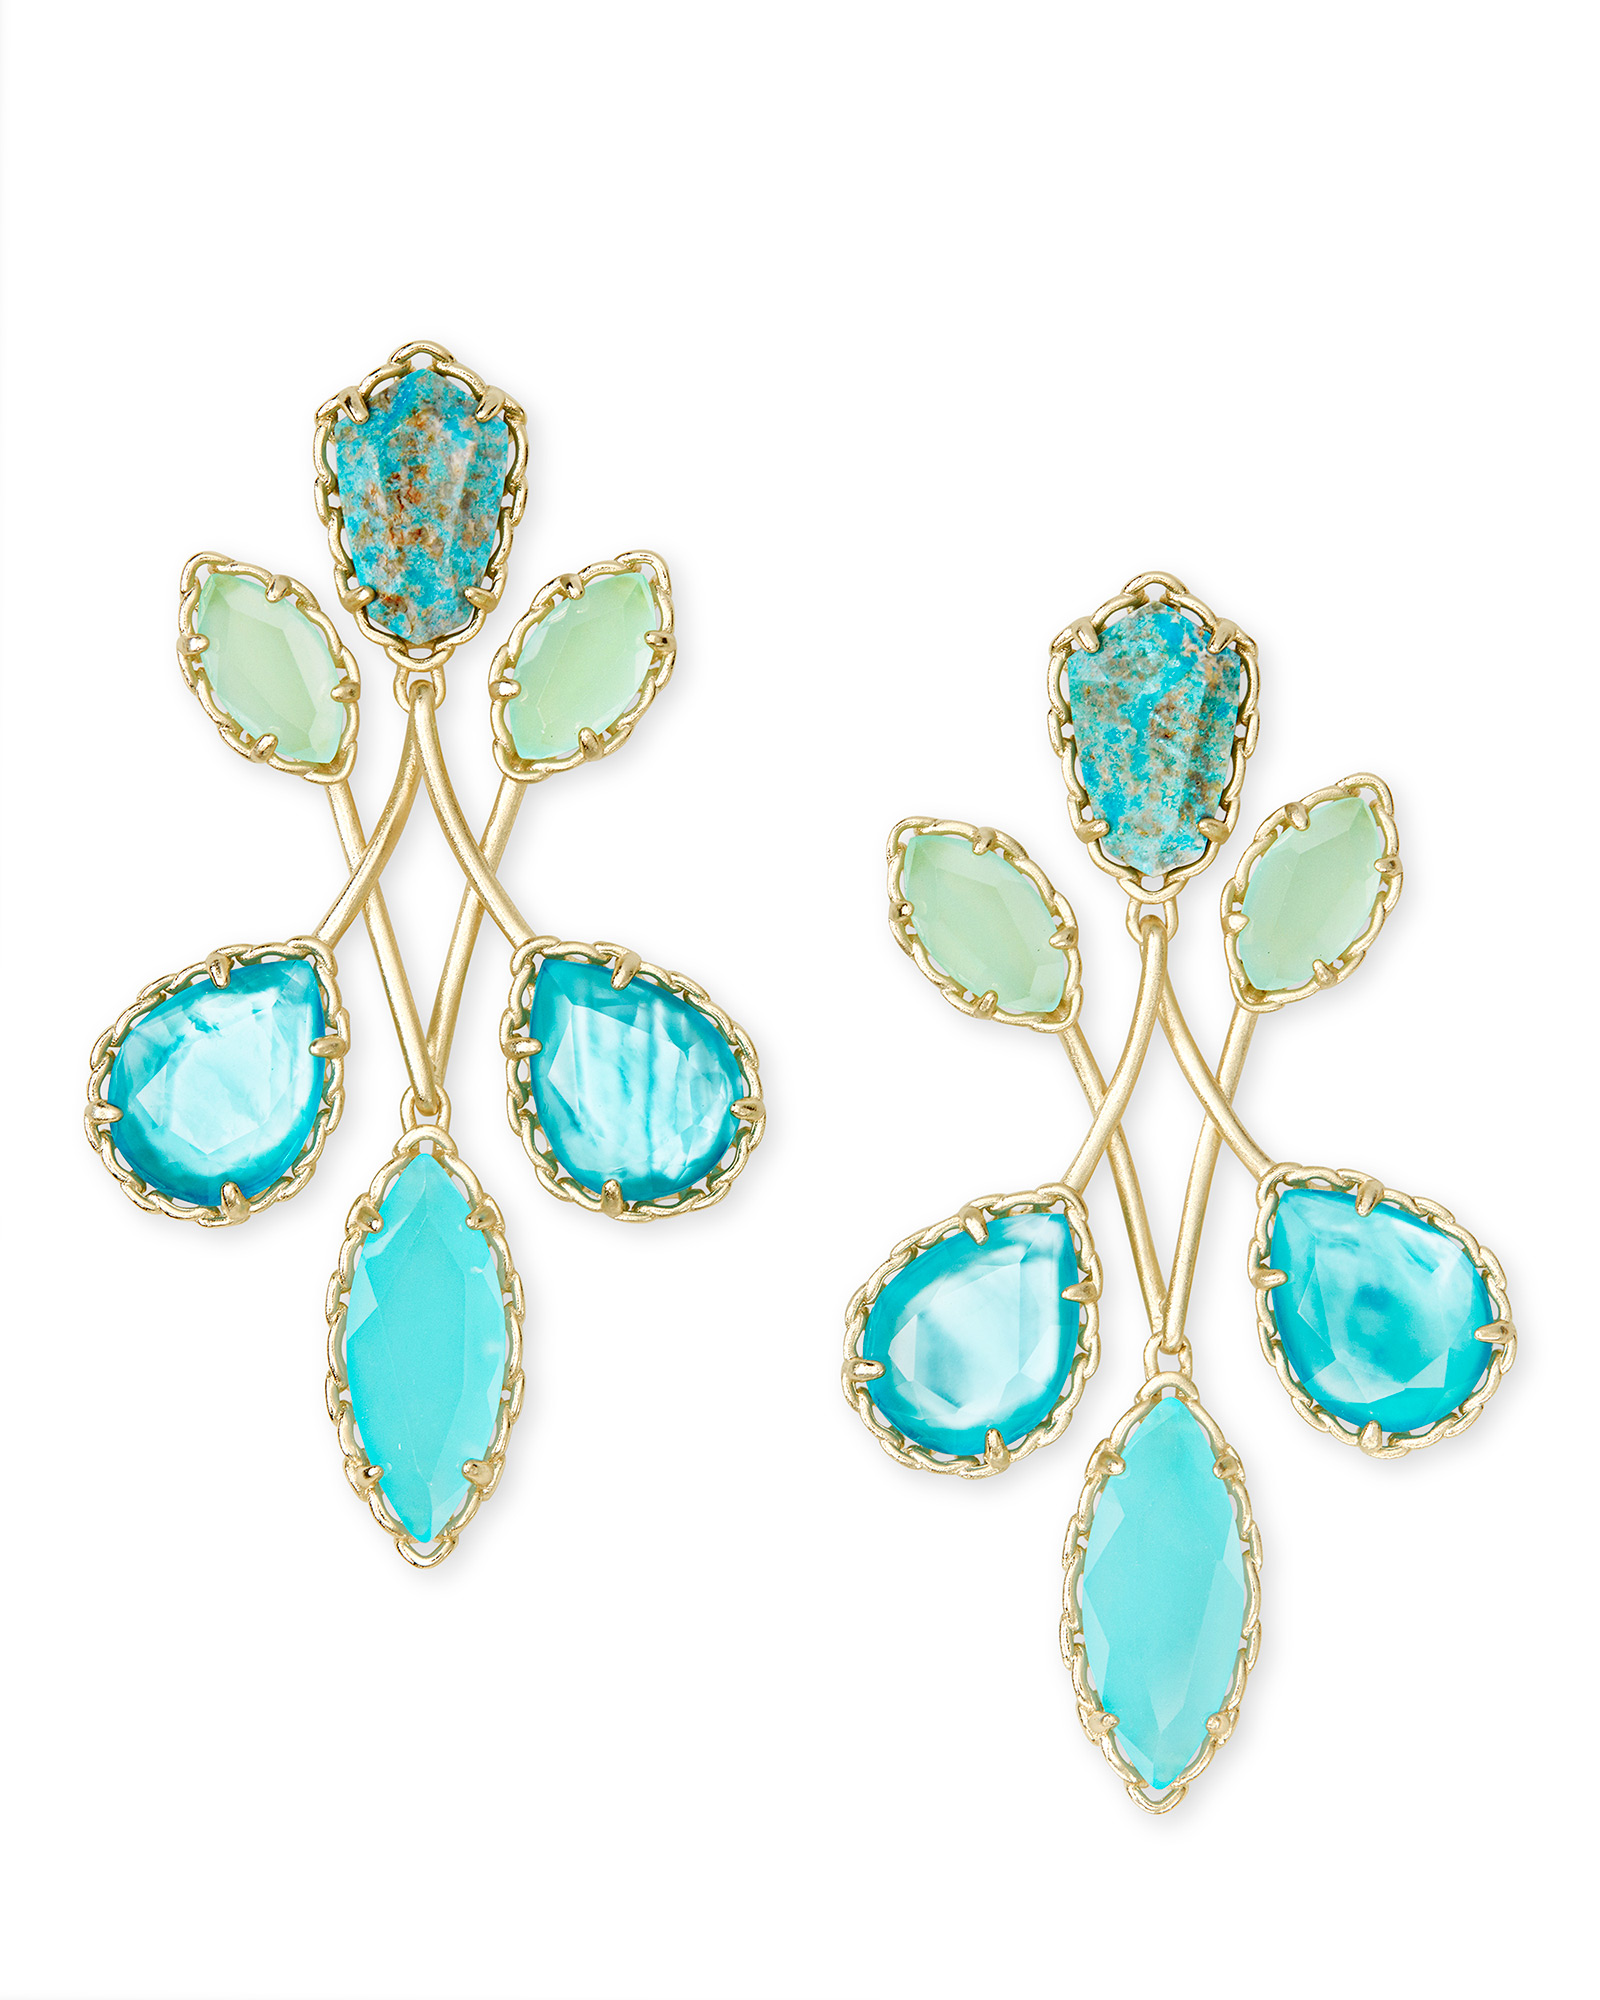 Gwenyth Gold Statement Earrings In Blue Mix